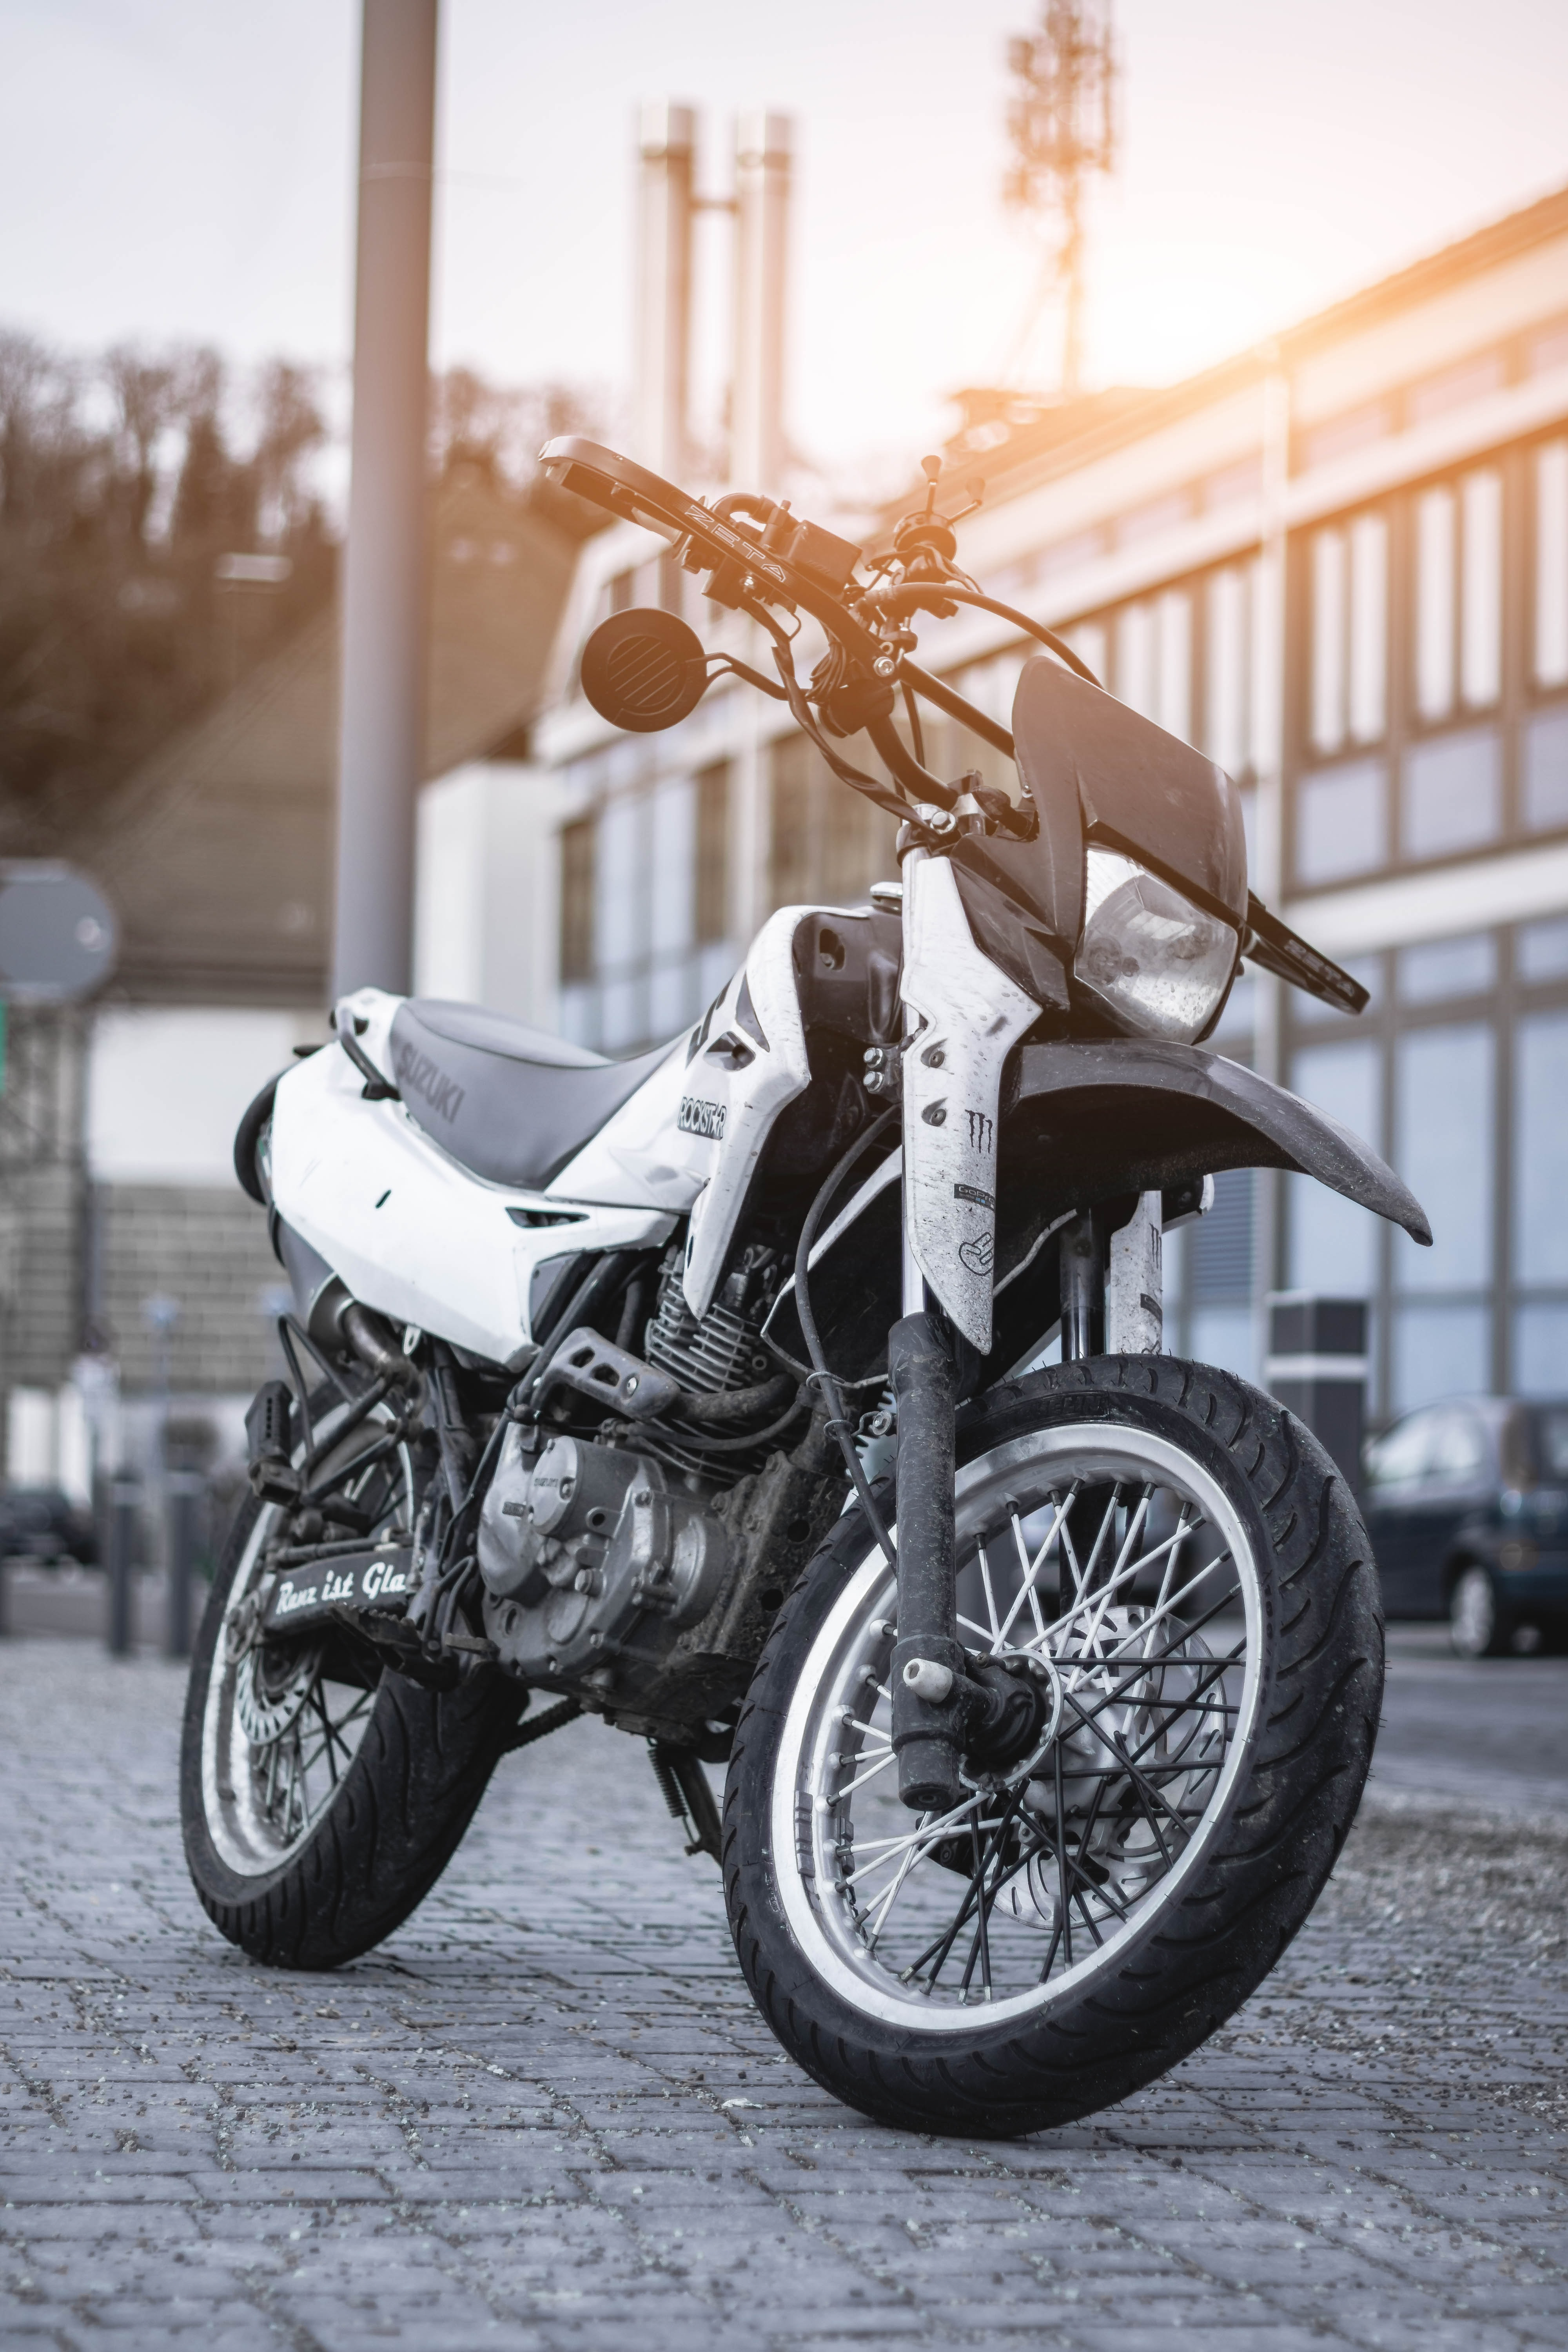 white and black motorcycle park during daytime